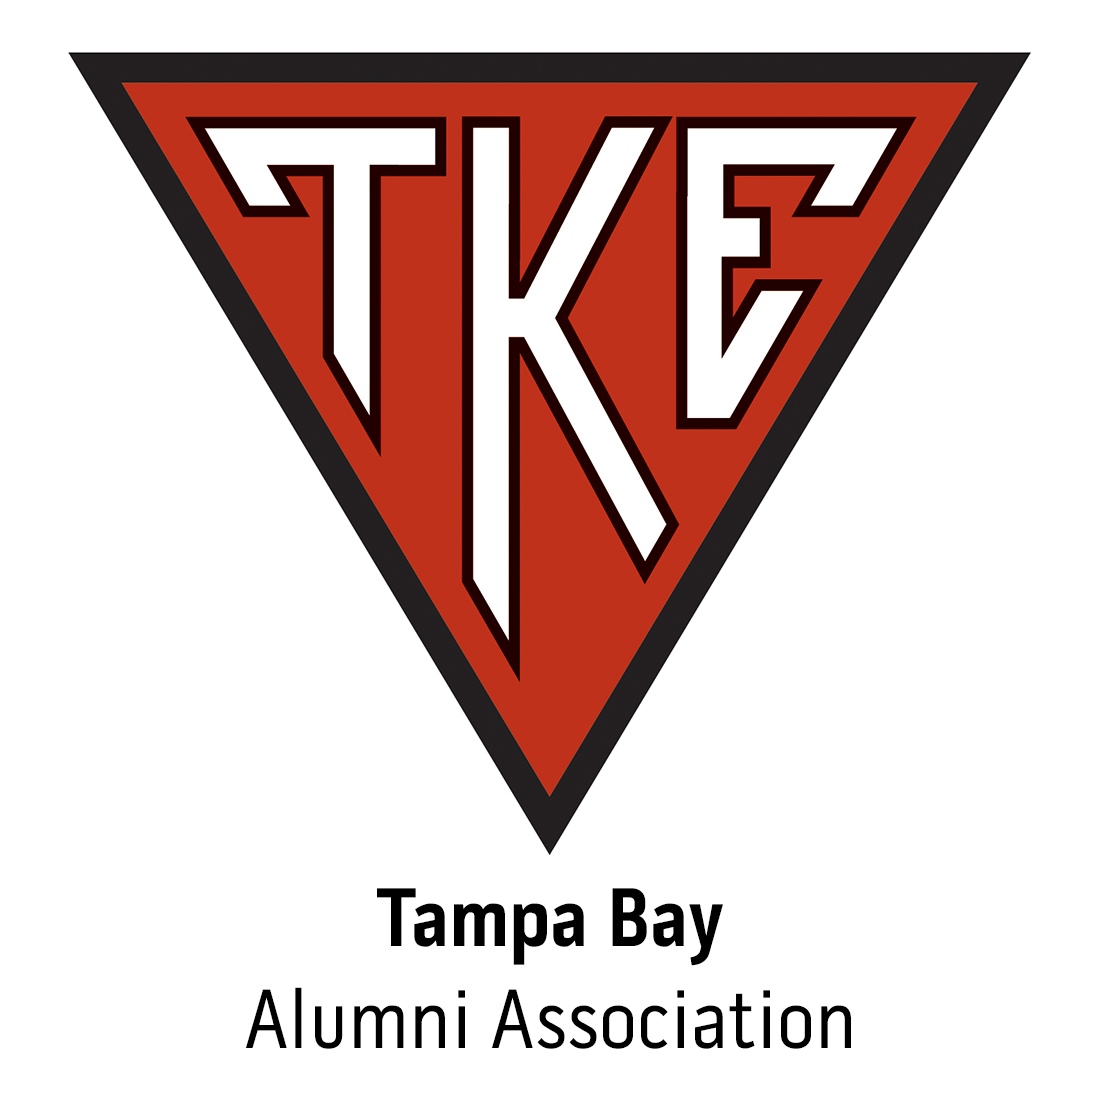 Tampa Bay Alumni Association at Tampa Bay Area Florida